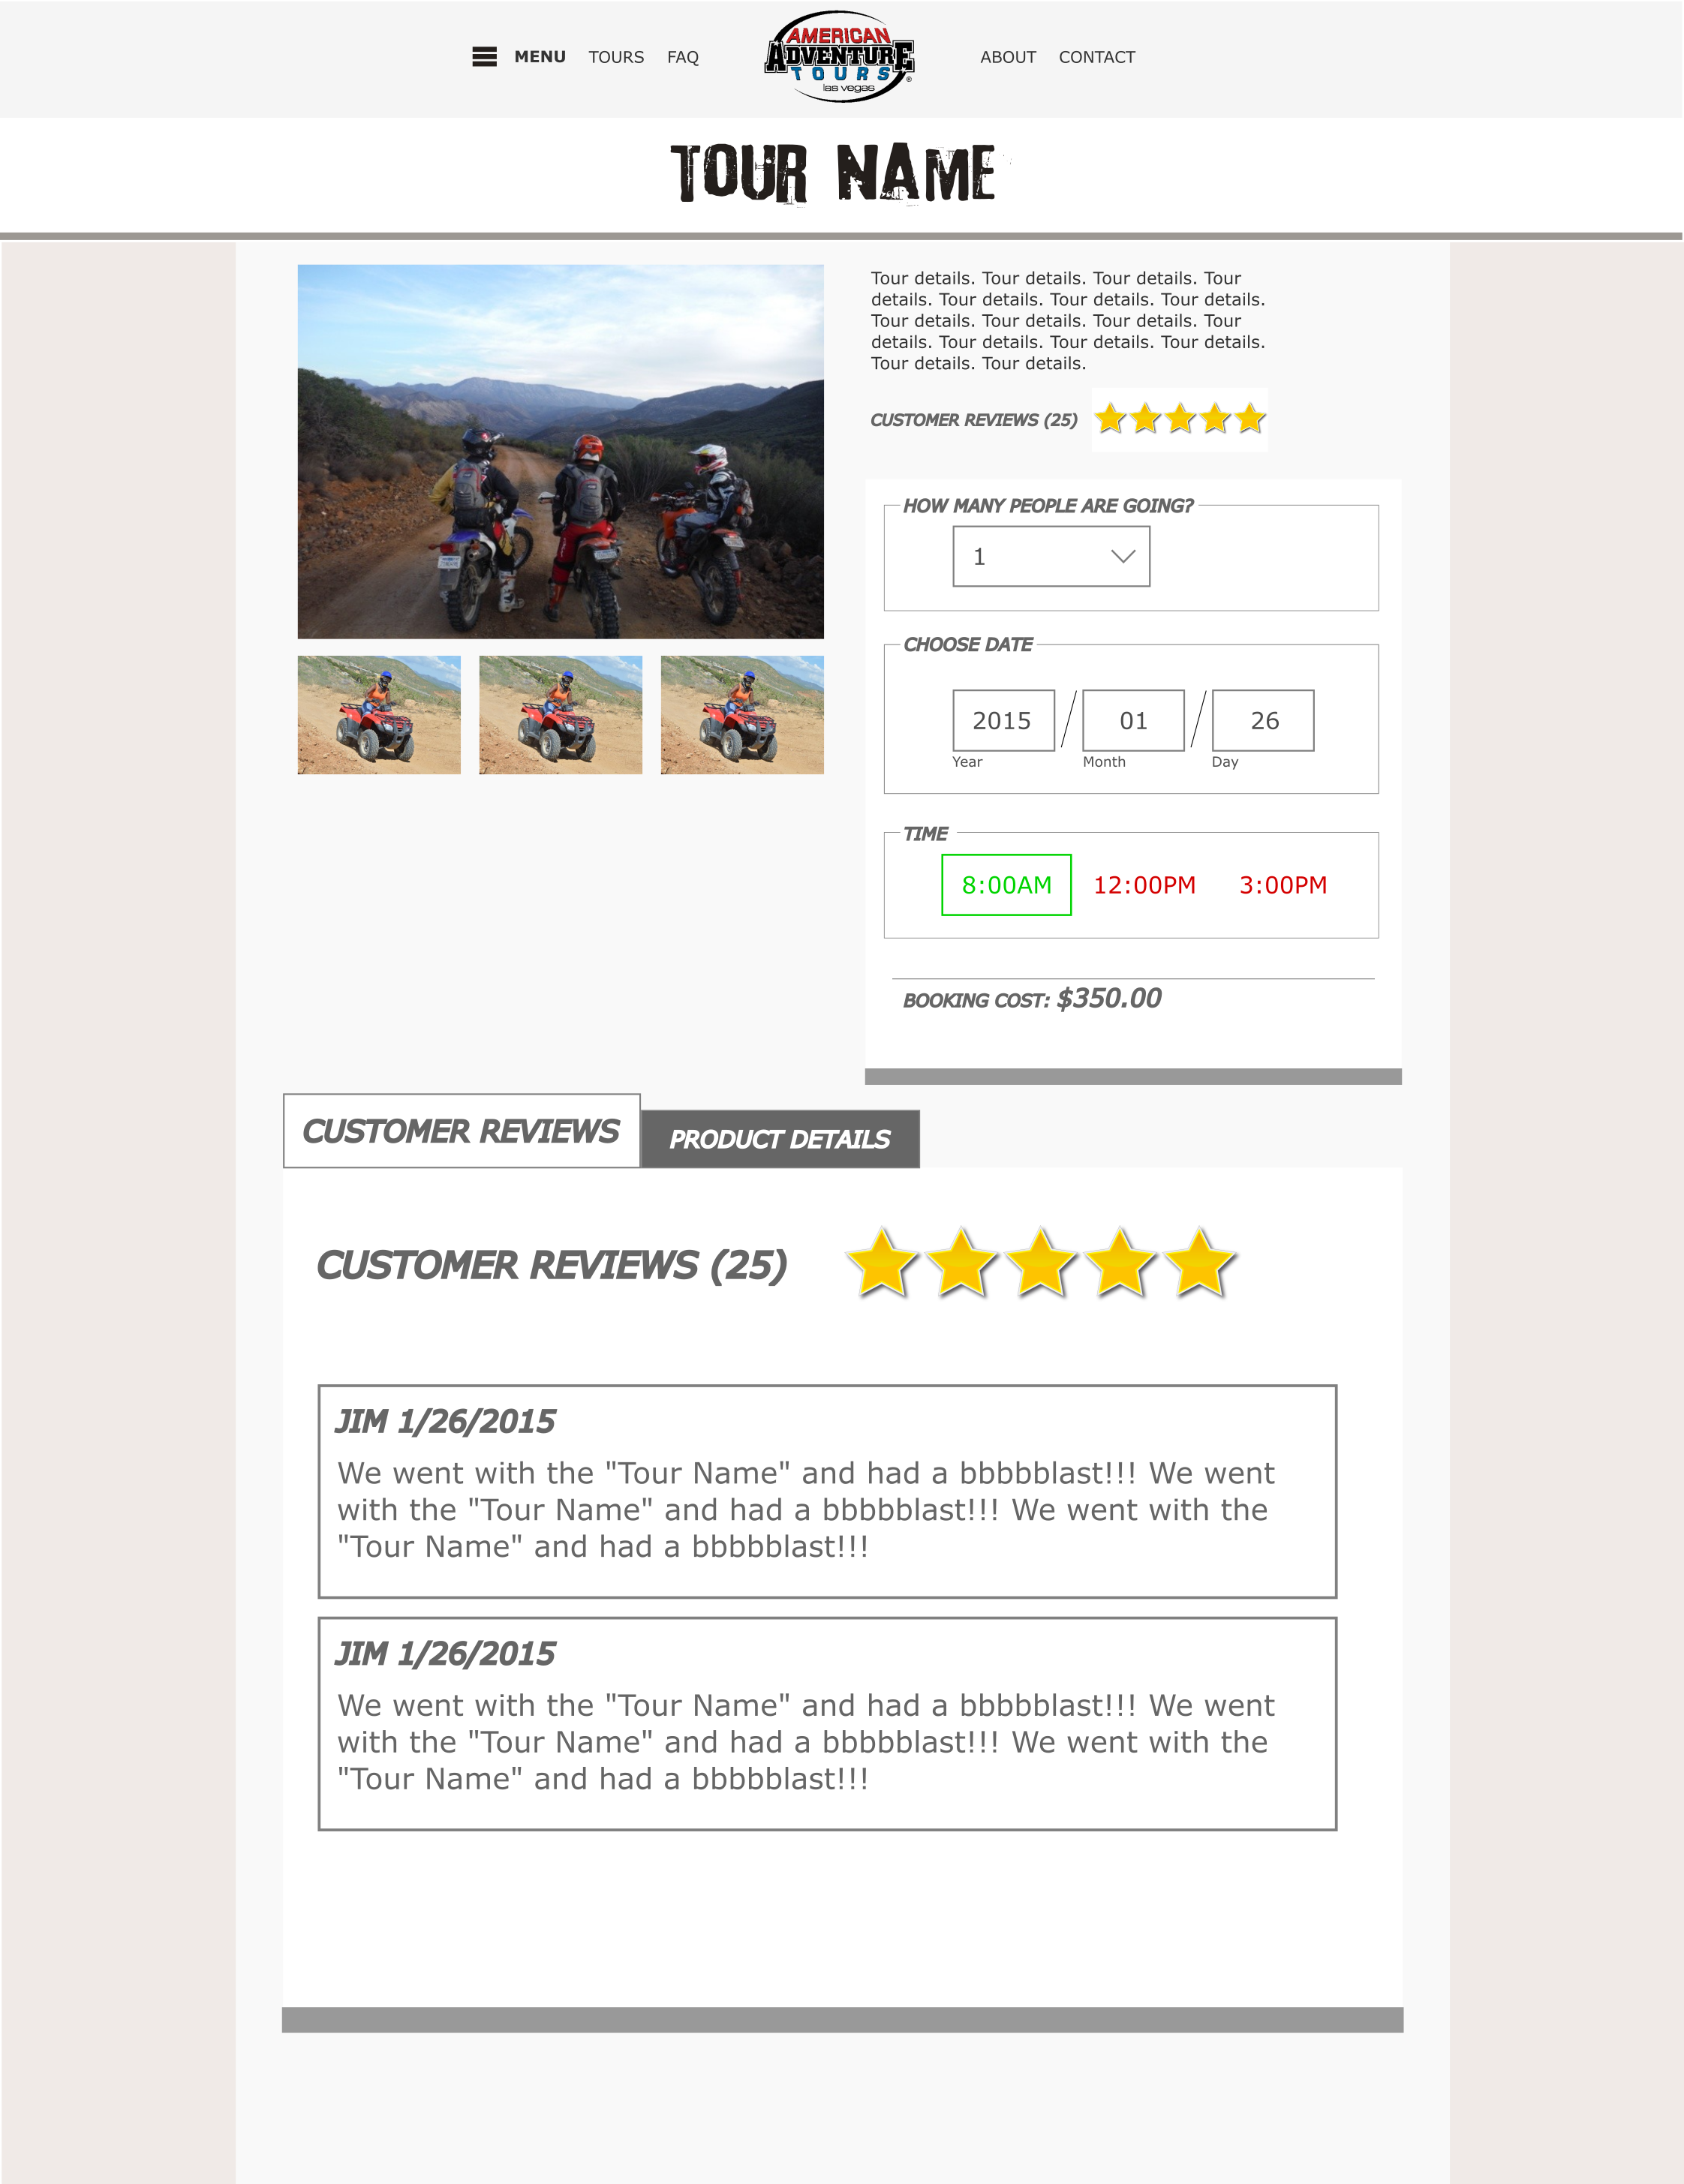 American Adventure Tours - product page mockup